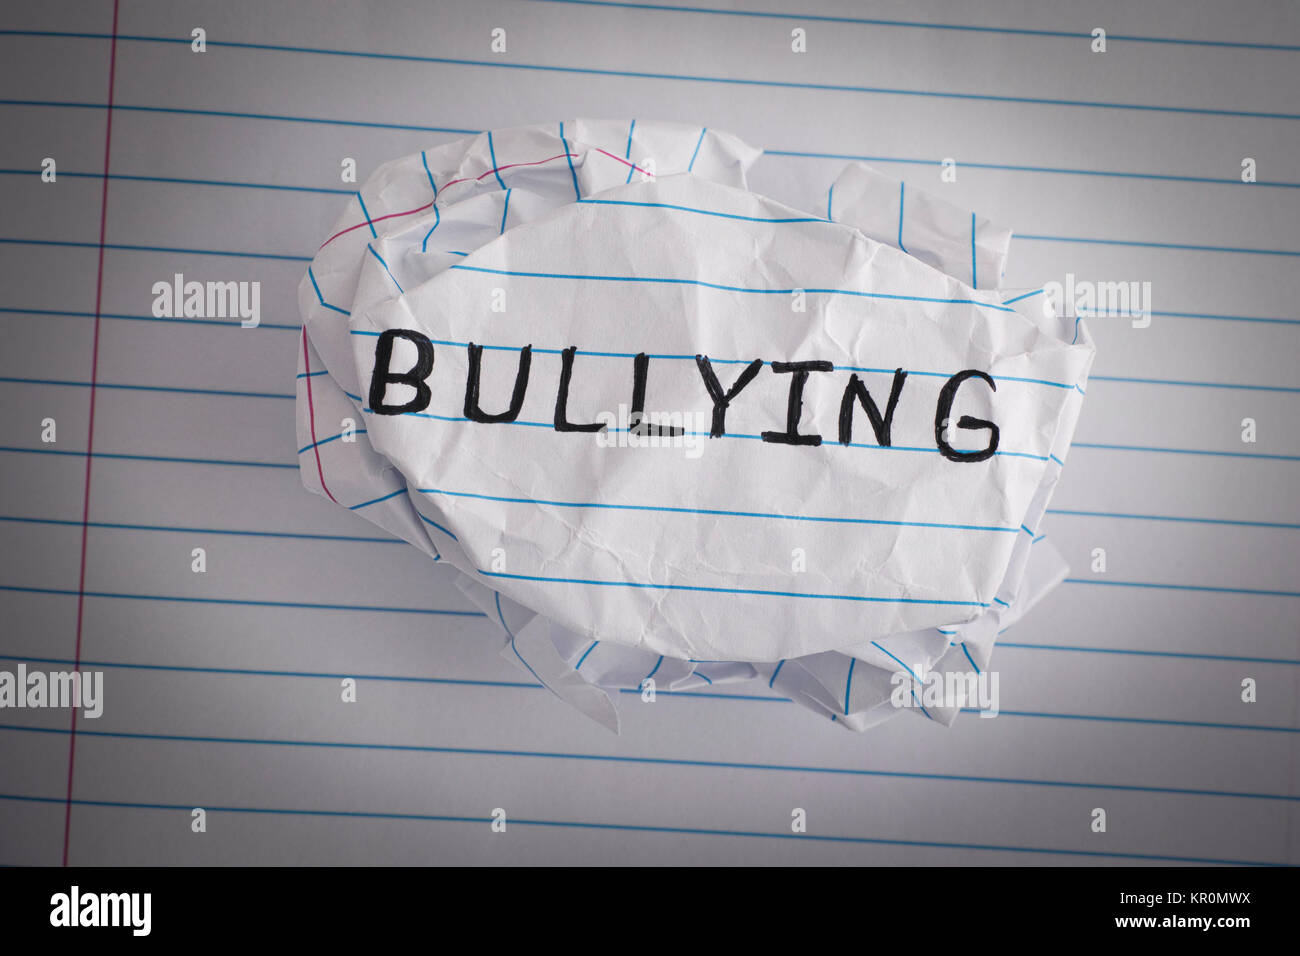 concept paper bullying Bullying in schools bullying should be a crime it is very cruel and unethical my main point in writing this paper is to inform people that bullying is wrong also i wish that everyone be more aware.